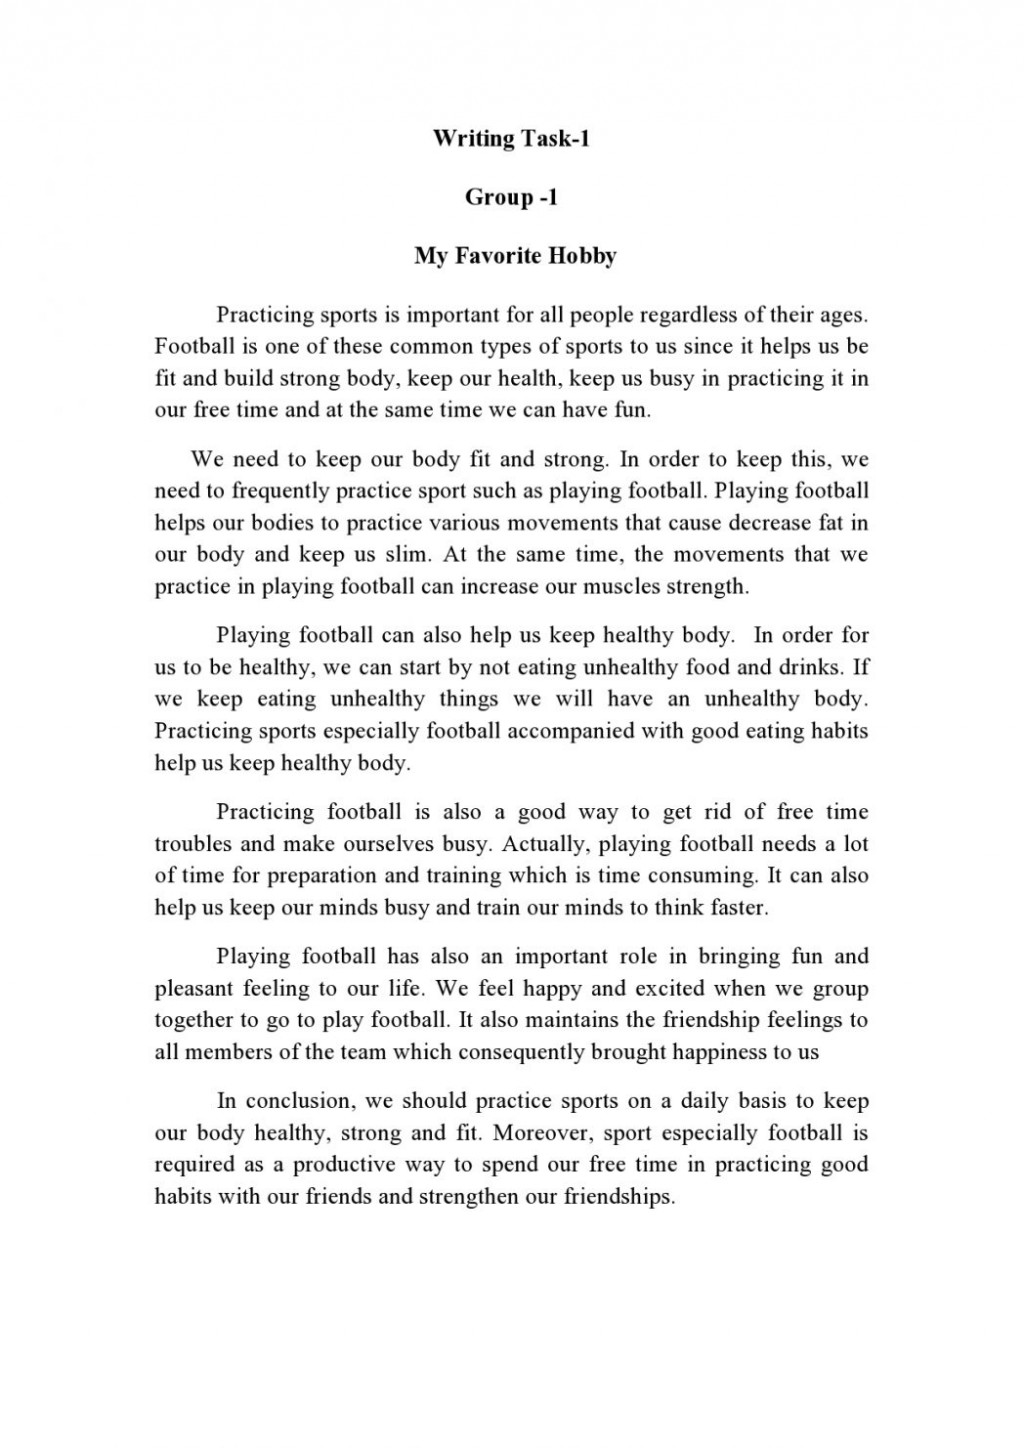 011 My Hobby Essay Example Writing Task One Blended Learning Environment W T Final Dr Write An On Gardening In English About Your Favorite Impressive Urdu Class 7 Hindi Cricket Marathi Large